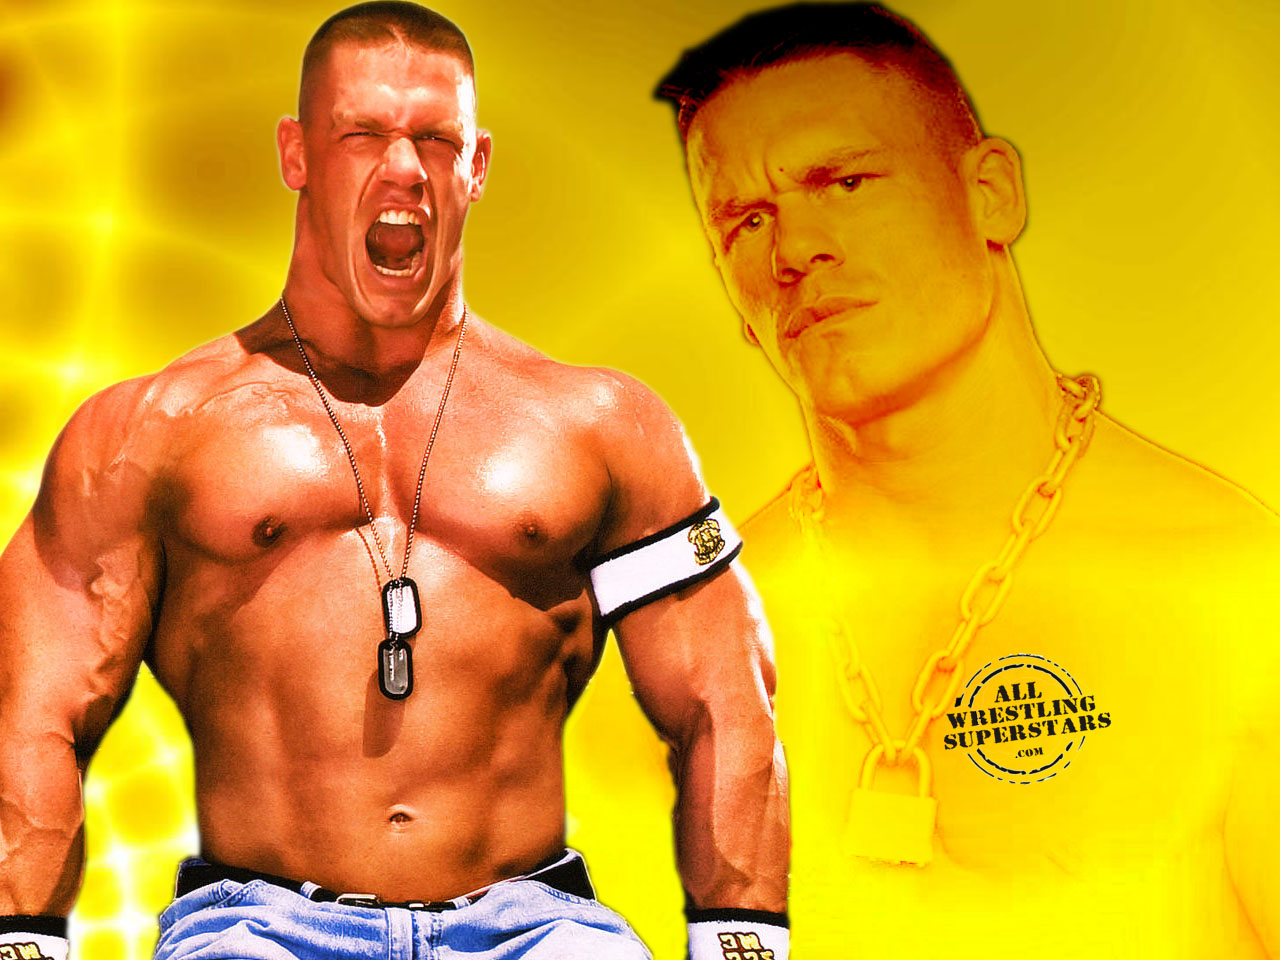 Wwe superstar john cena videos download